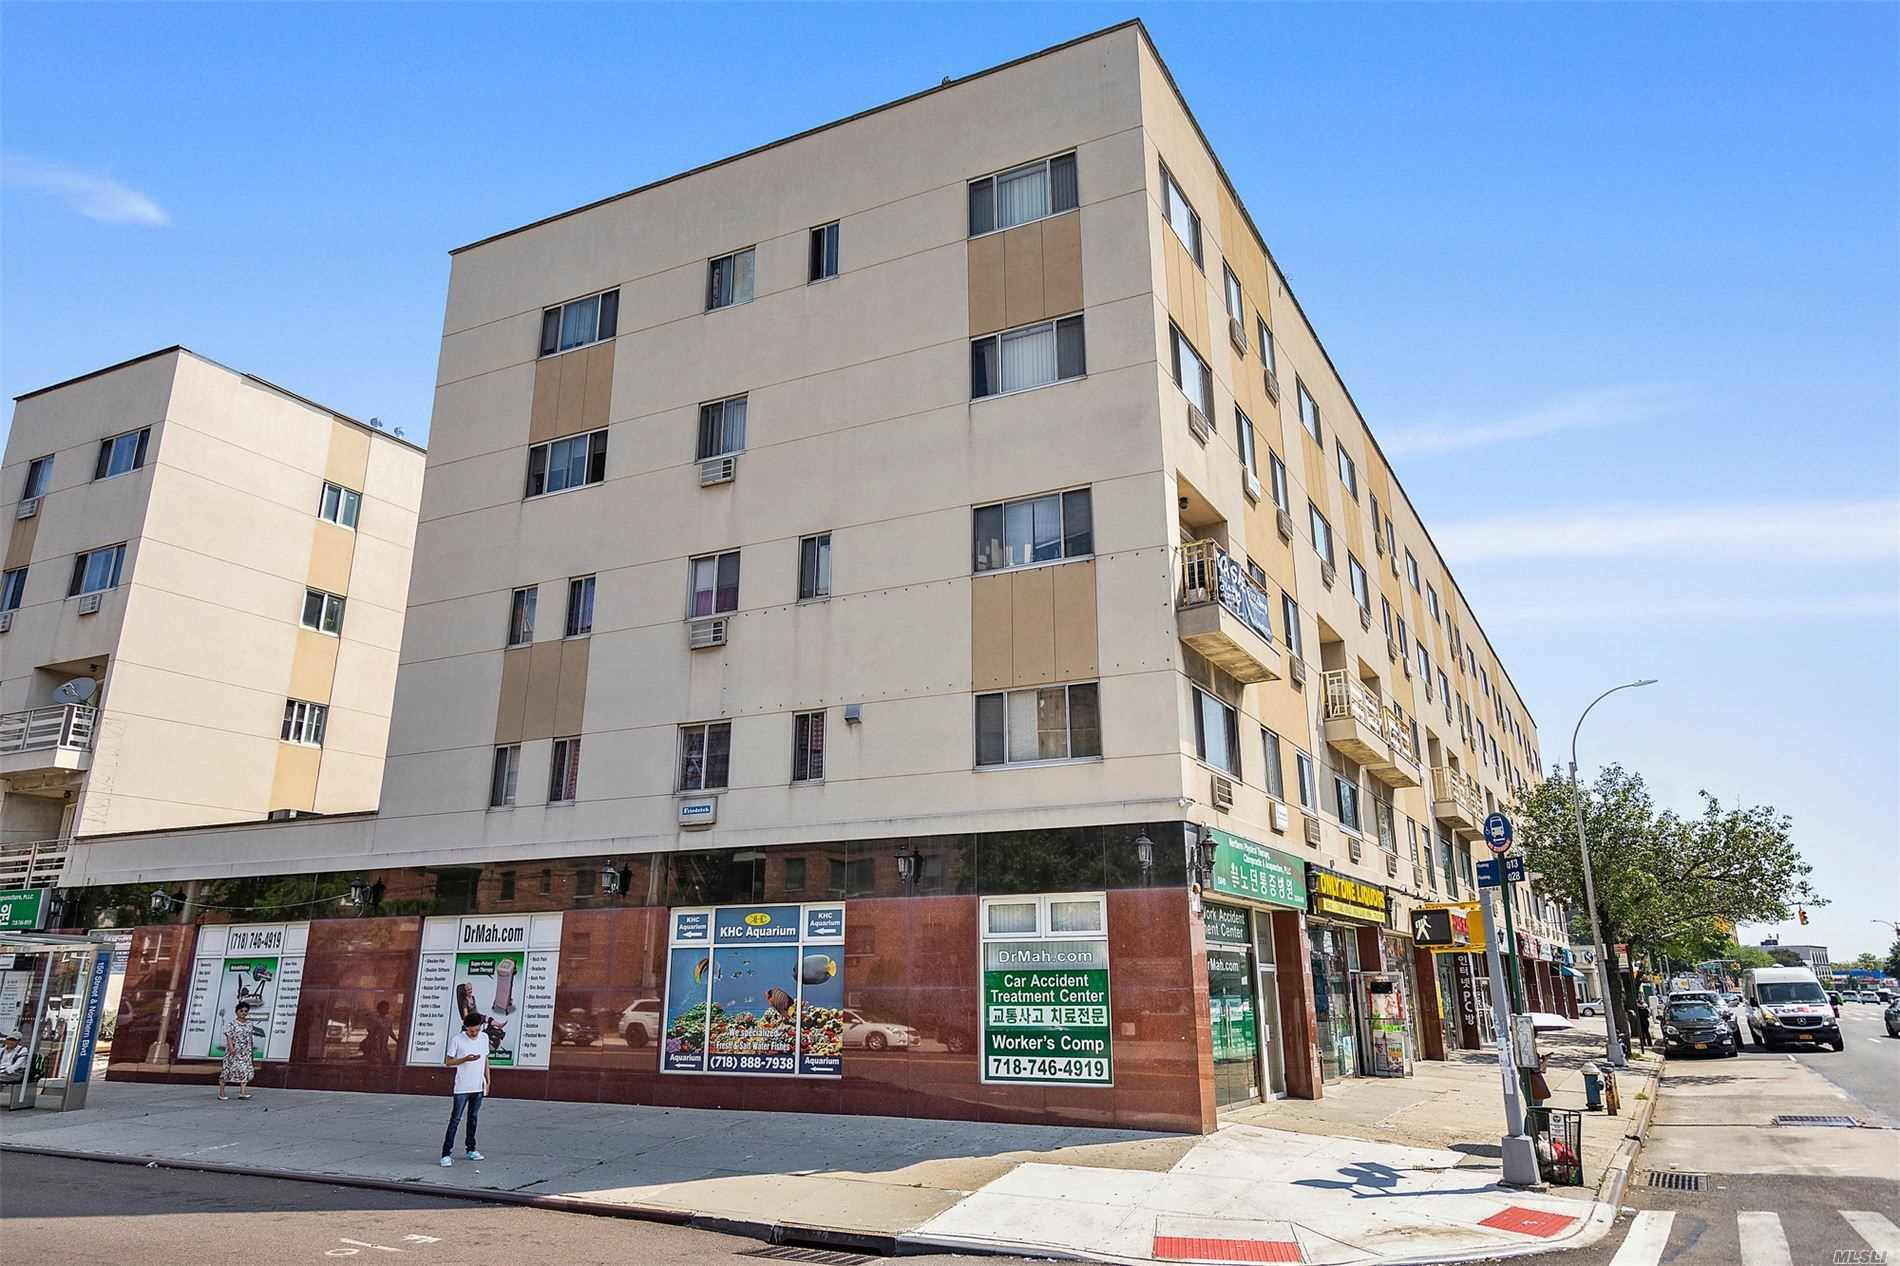 Five-Story Corner Mixed-Use Property On High Traffic Northern Blvd In Flushing. Projected Yearly NOI: $241, 00, Projected CAP Rate: 5.4%. Two Retail Spaces, Plus Four Apartments Above. First Floor And Cellar: Retail Space. Second And Third Floors: Three Beds With Two Baths; Fourth And Fifth Floors: Duplex Units With Two Beds And Two Baths. Public transportations: Q13, Q15, Q15A, Q28 around the corner LIRR Within 5 mins walk. Conveniently access to all Supermarkets, Restaurants, Stores...